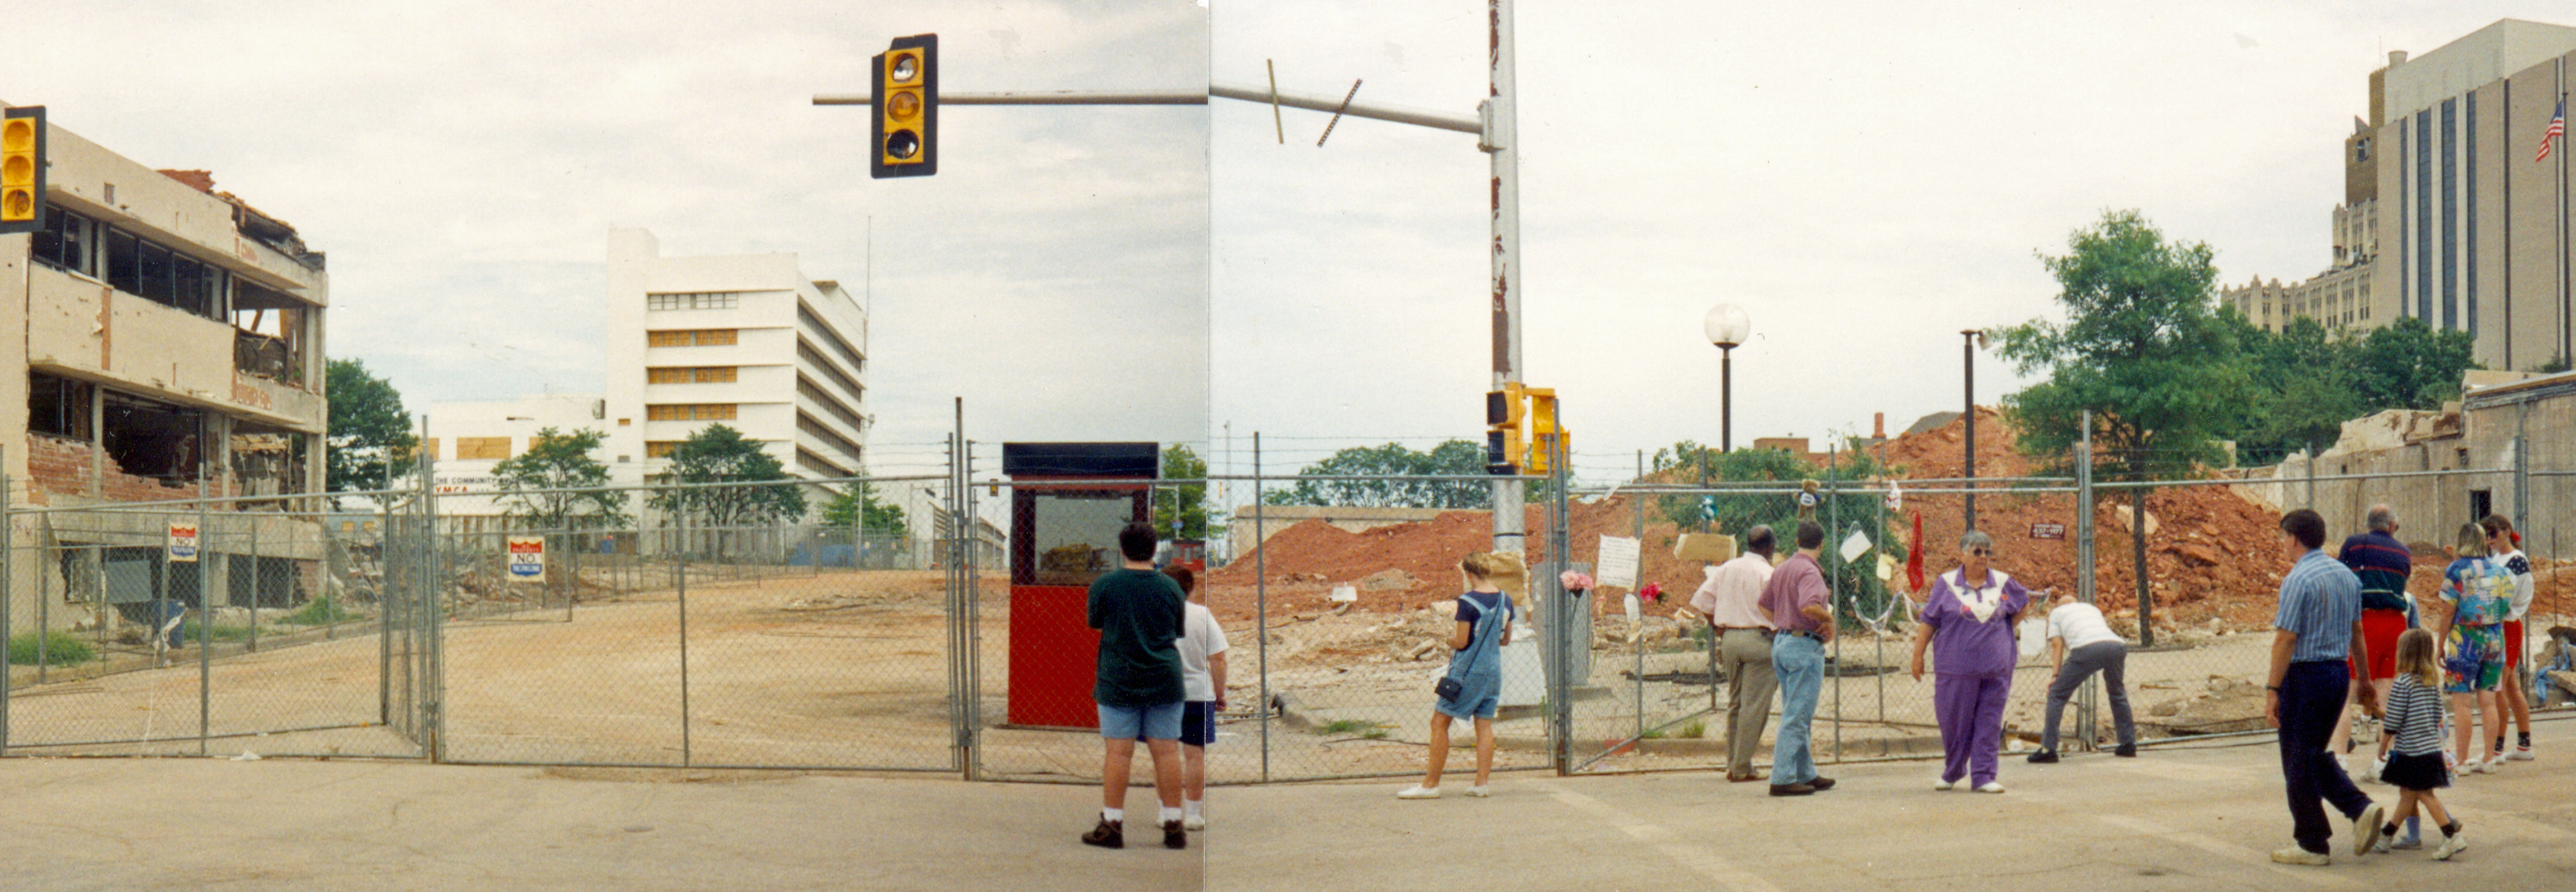 Two images are stitched together showing the site of where the building stood prior to its demolition. A crowd of people are visible in front of the chain link fence blocking entrance to the site. Large piles of dirt can be seen on the site as well as damage to nearby buildings.